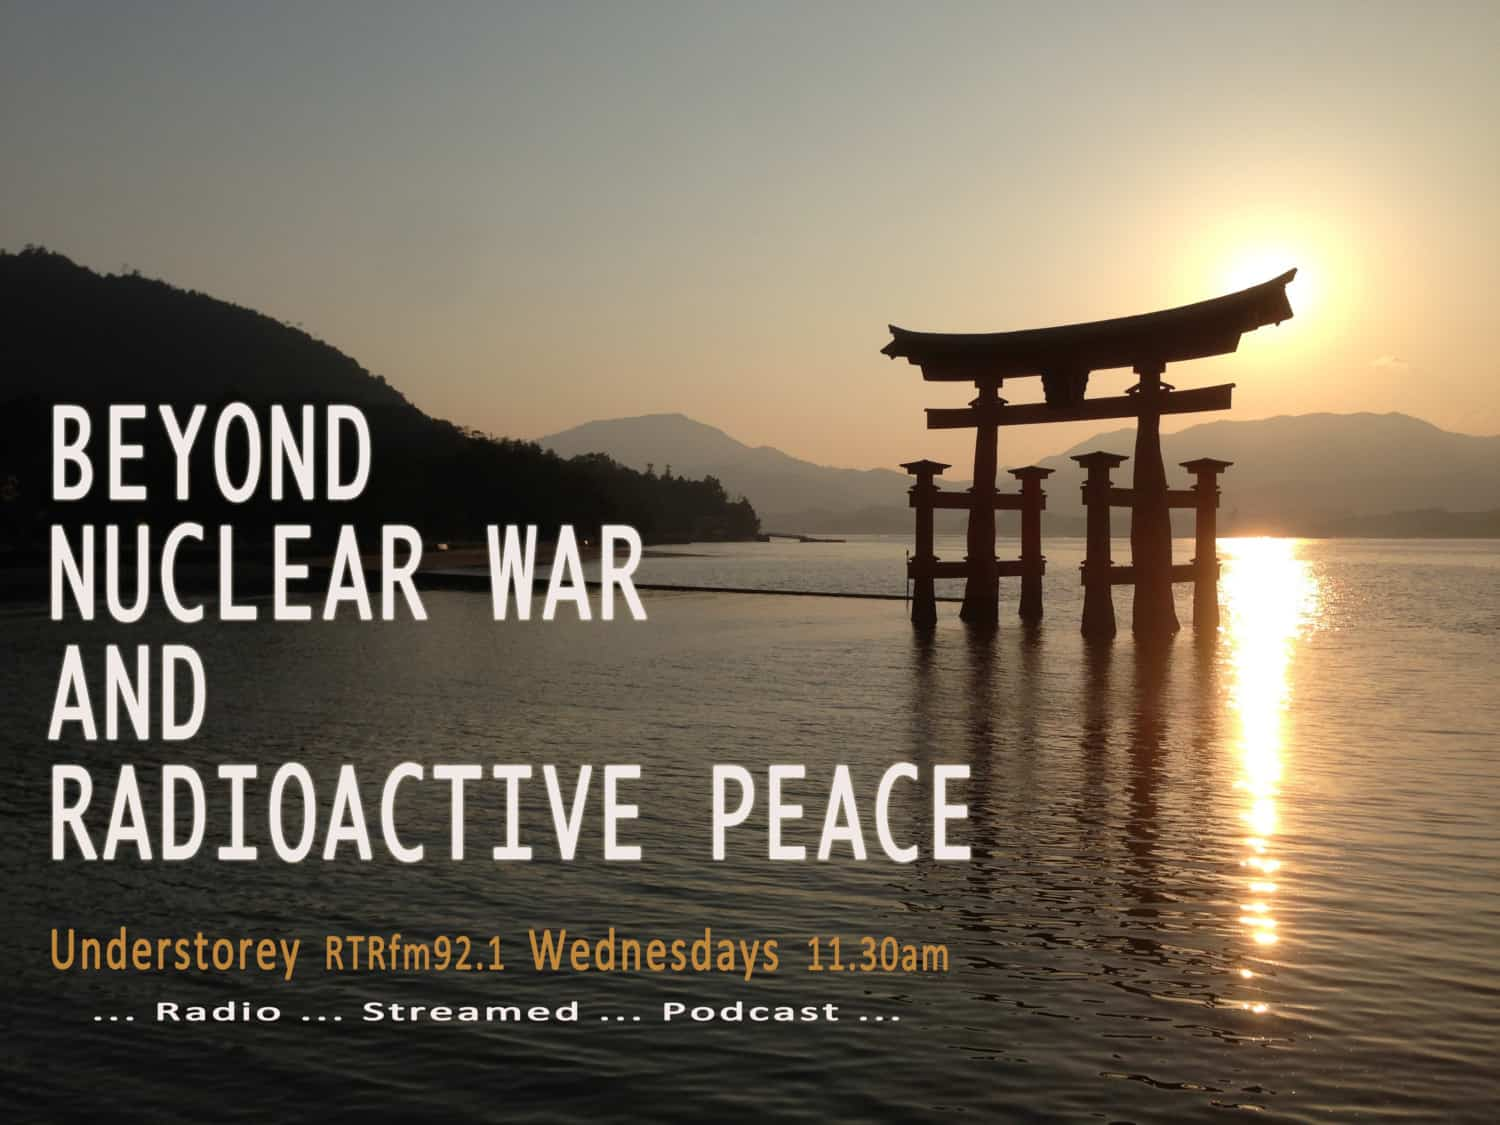 Beyond nuclear war and radioactive peace